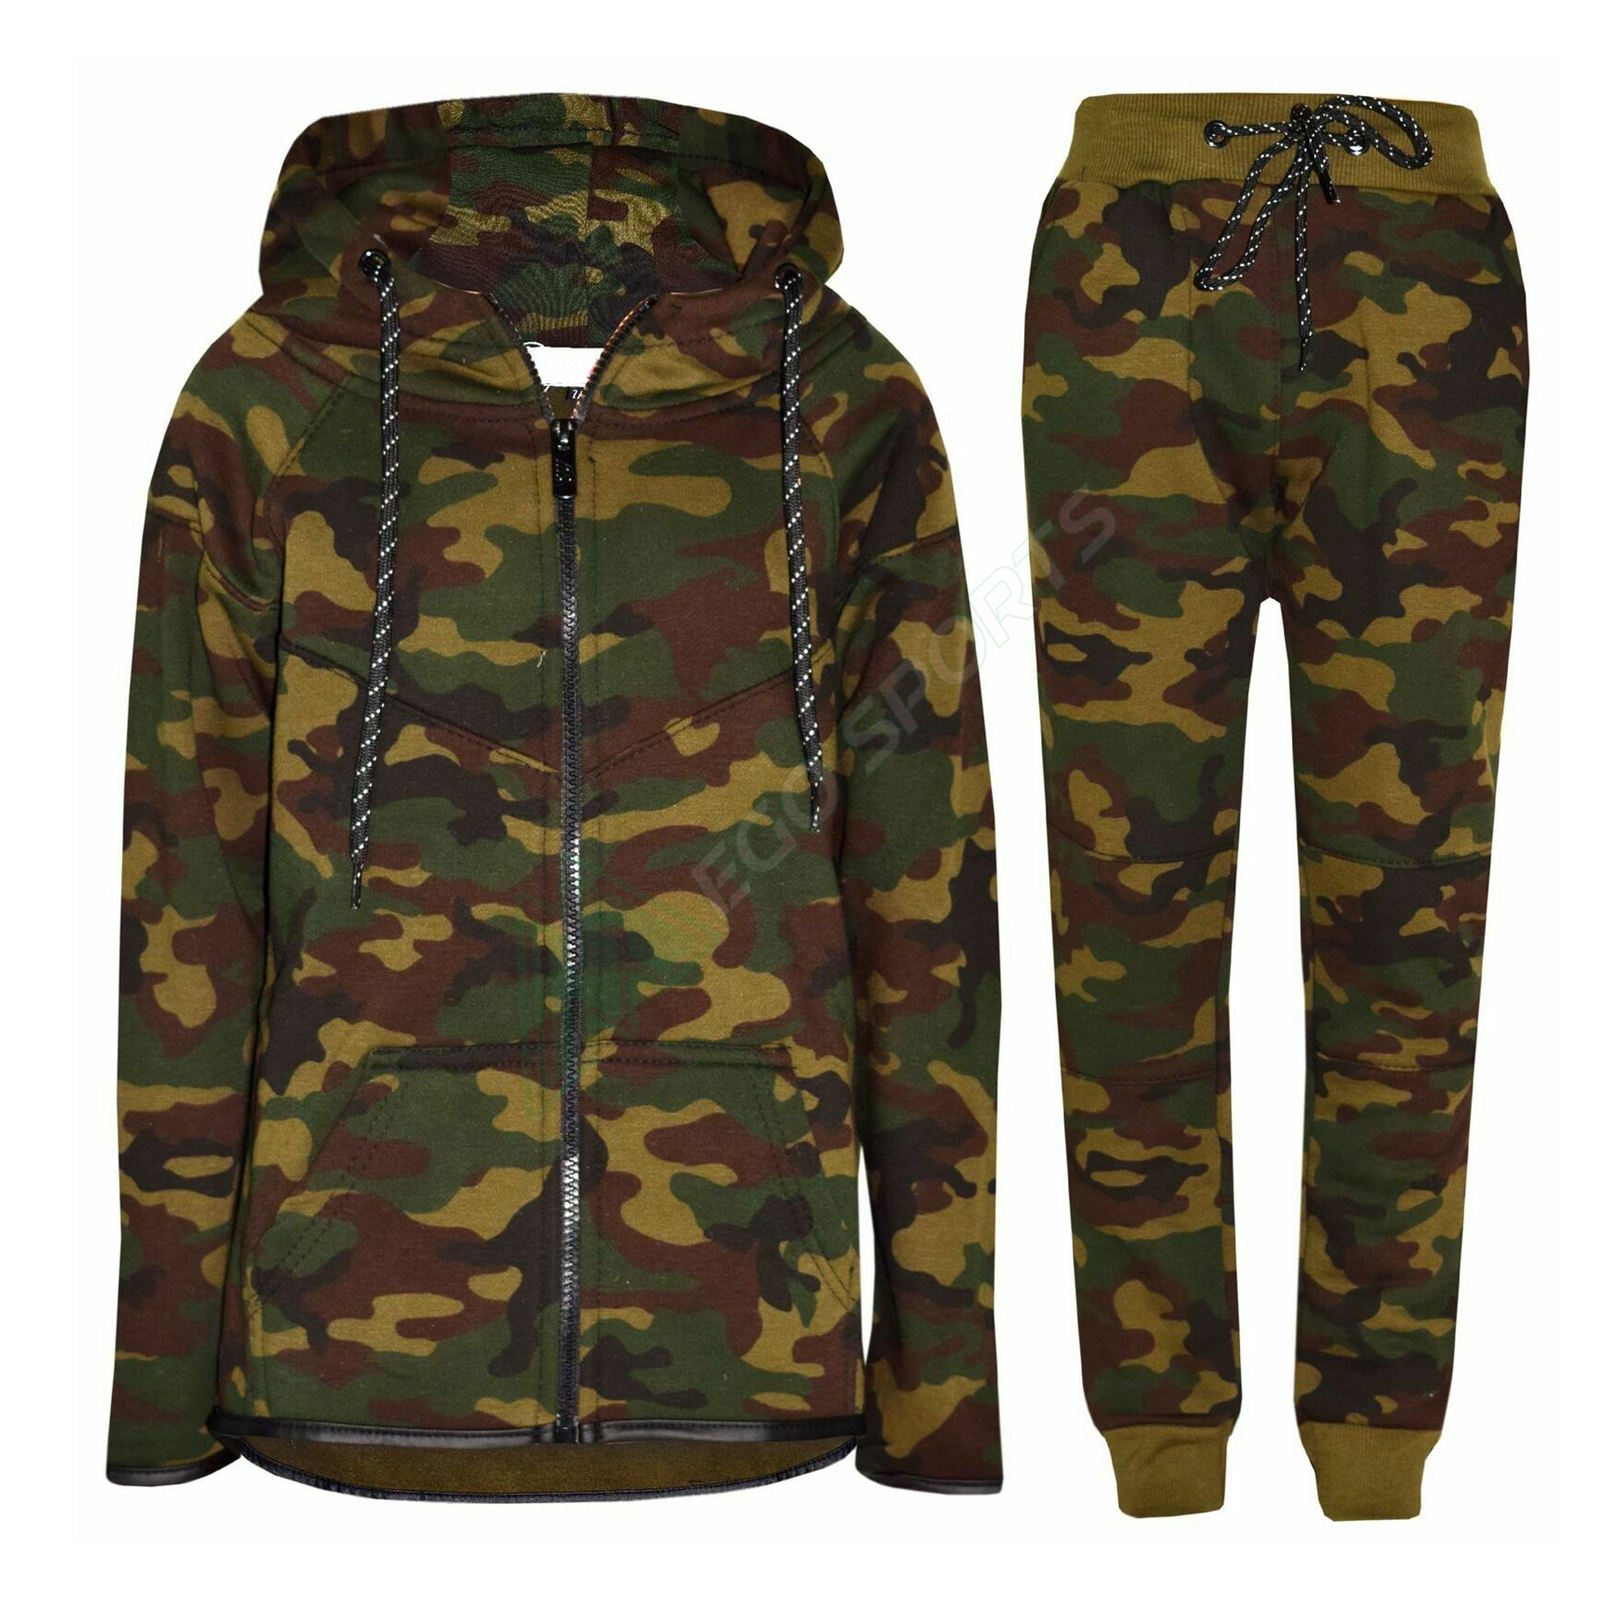 Top Quality Kids Contrast Camouflage Print Tracksuit Sweat Top & Jogging Track Bottoms Set